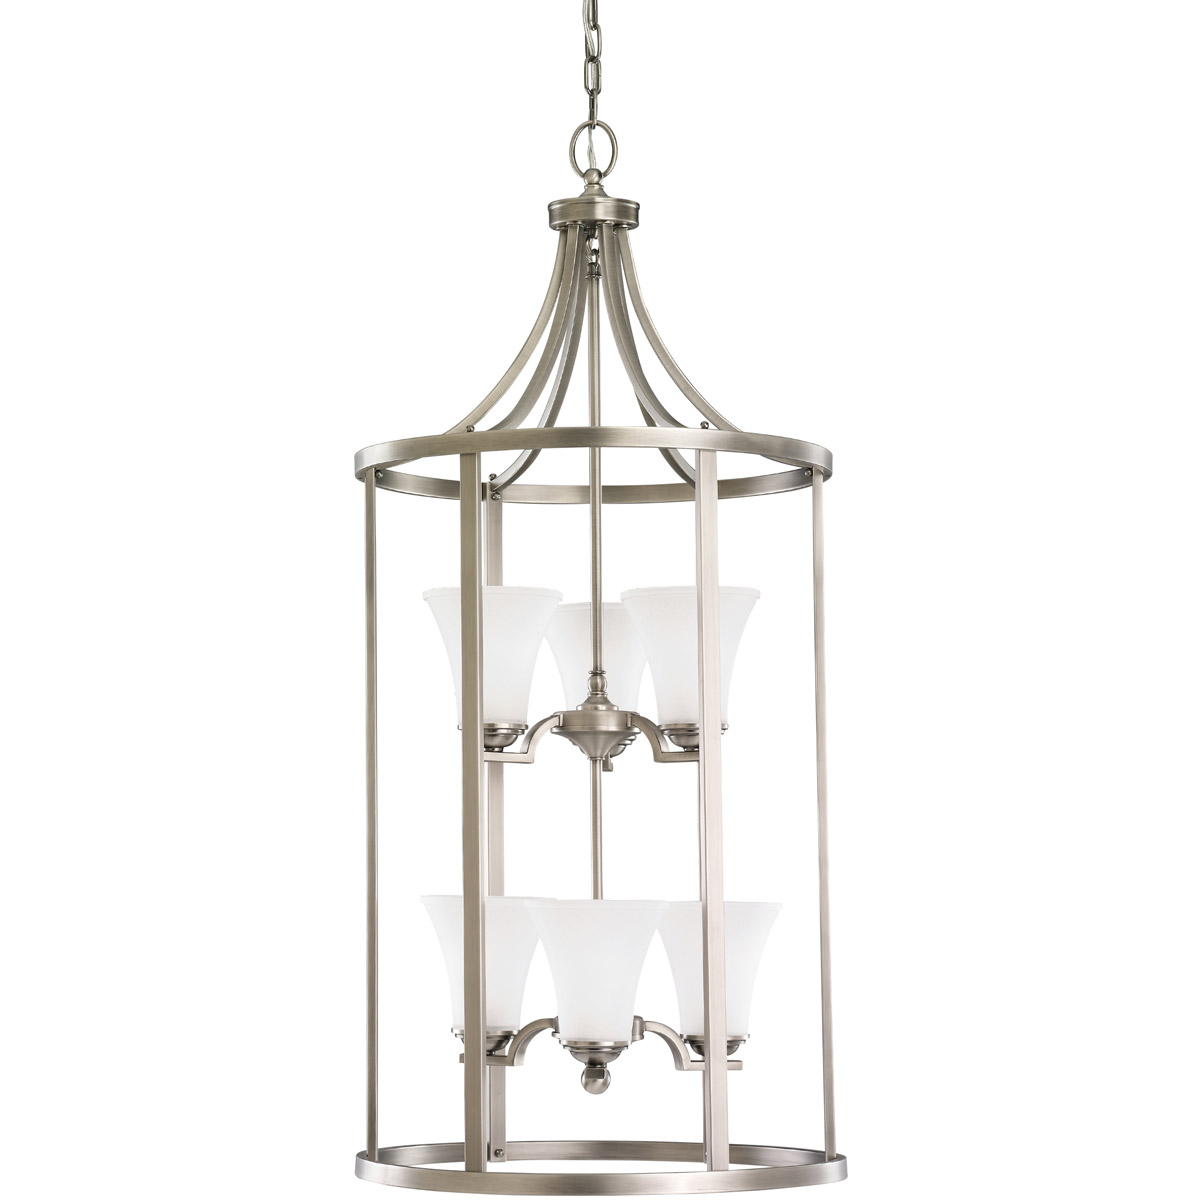 Sea Gull 51376-965 Somerton 6 Light 19 inch Antique Brushed Nickel Foyer Pendant Ceiling Light in Satin Etched Glass, Standard photo